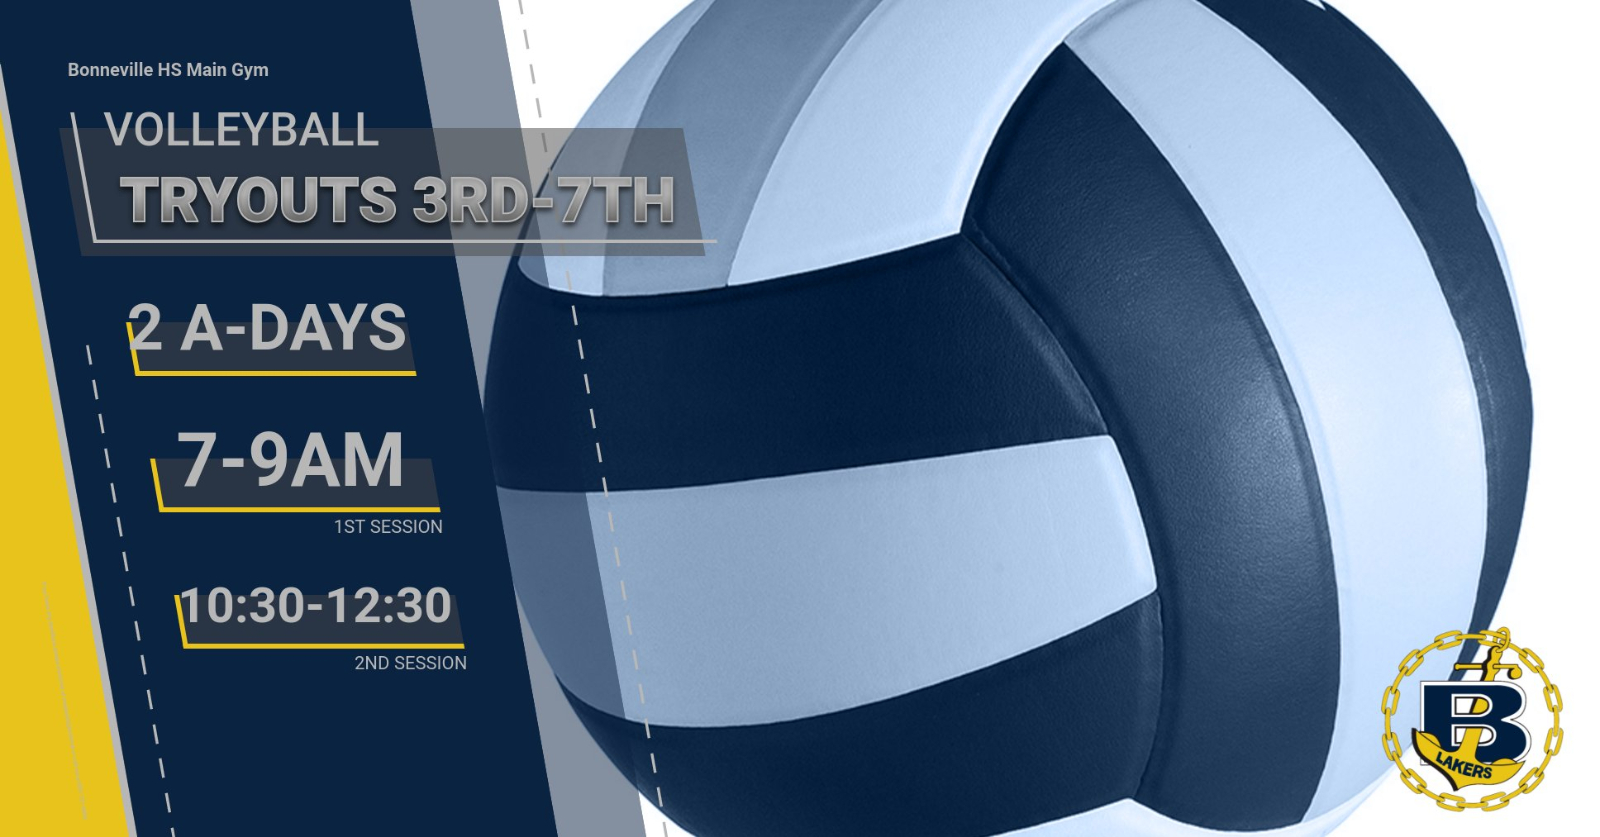 Volleyball Tryouts August 3rd-7th